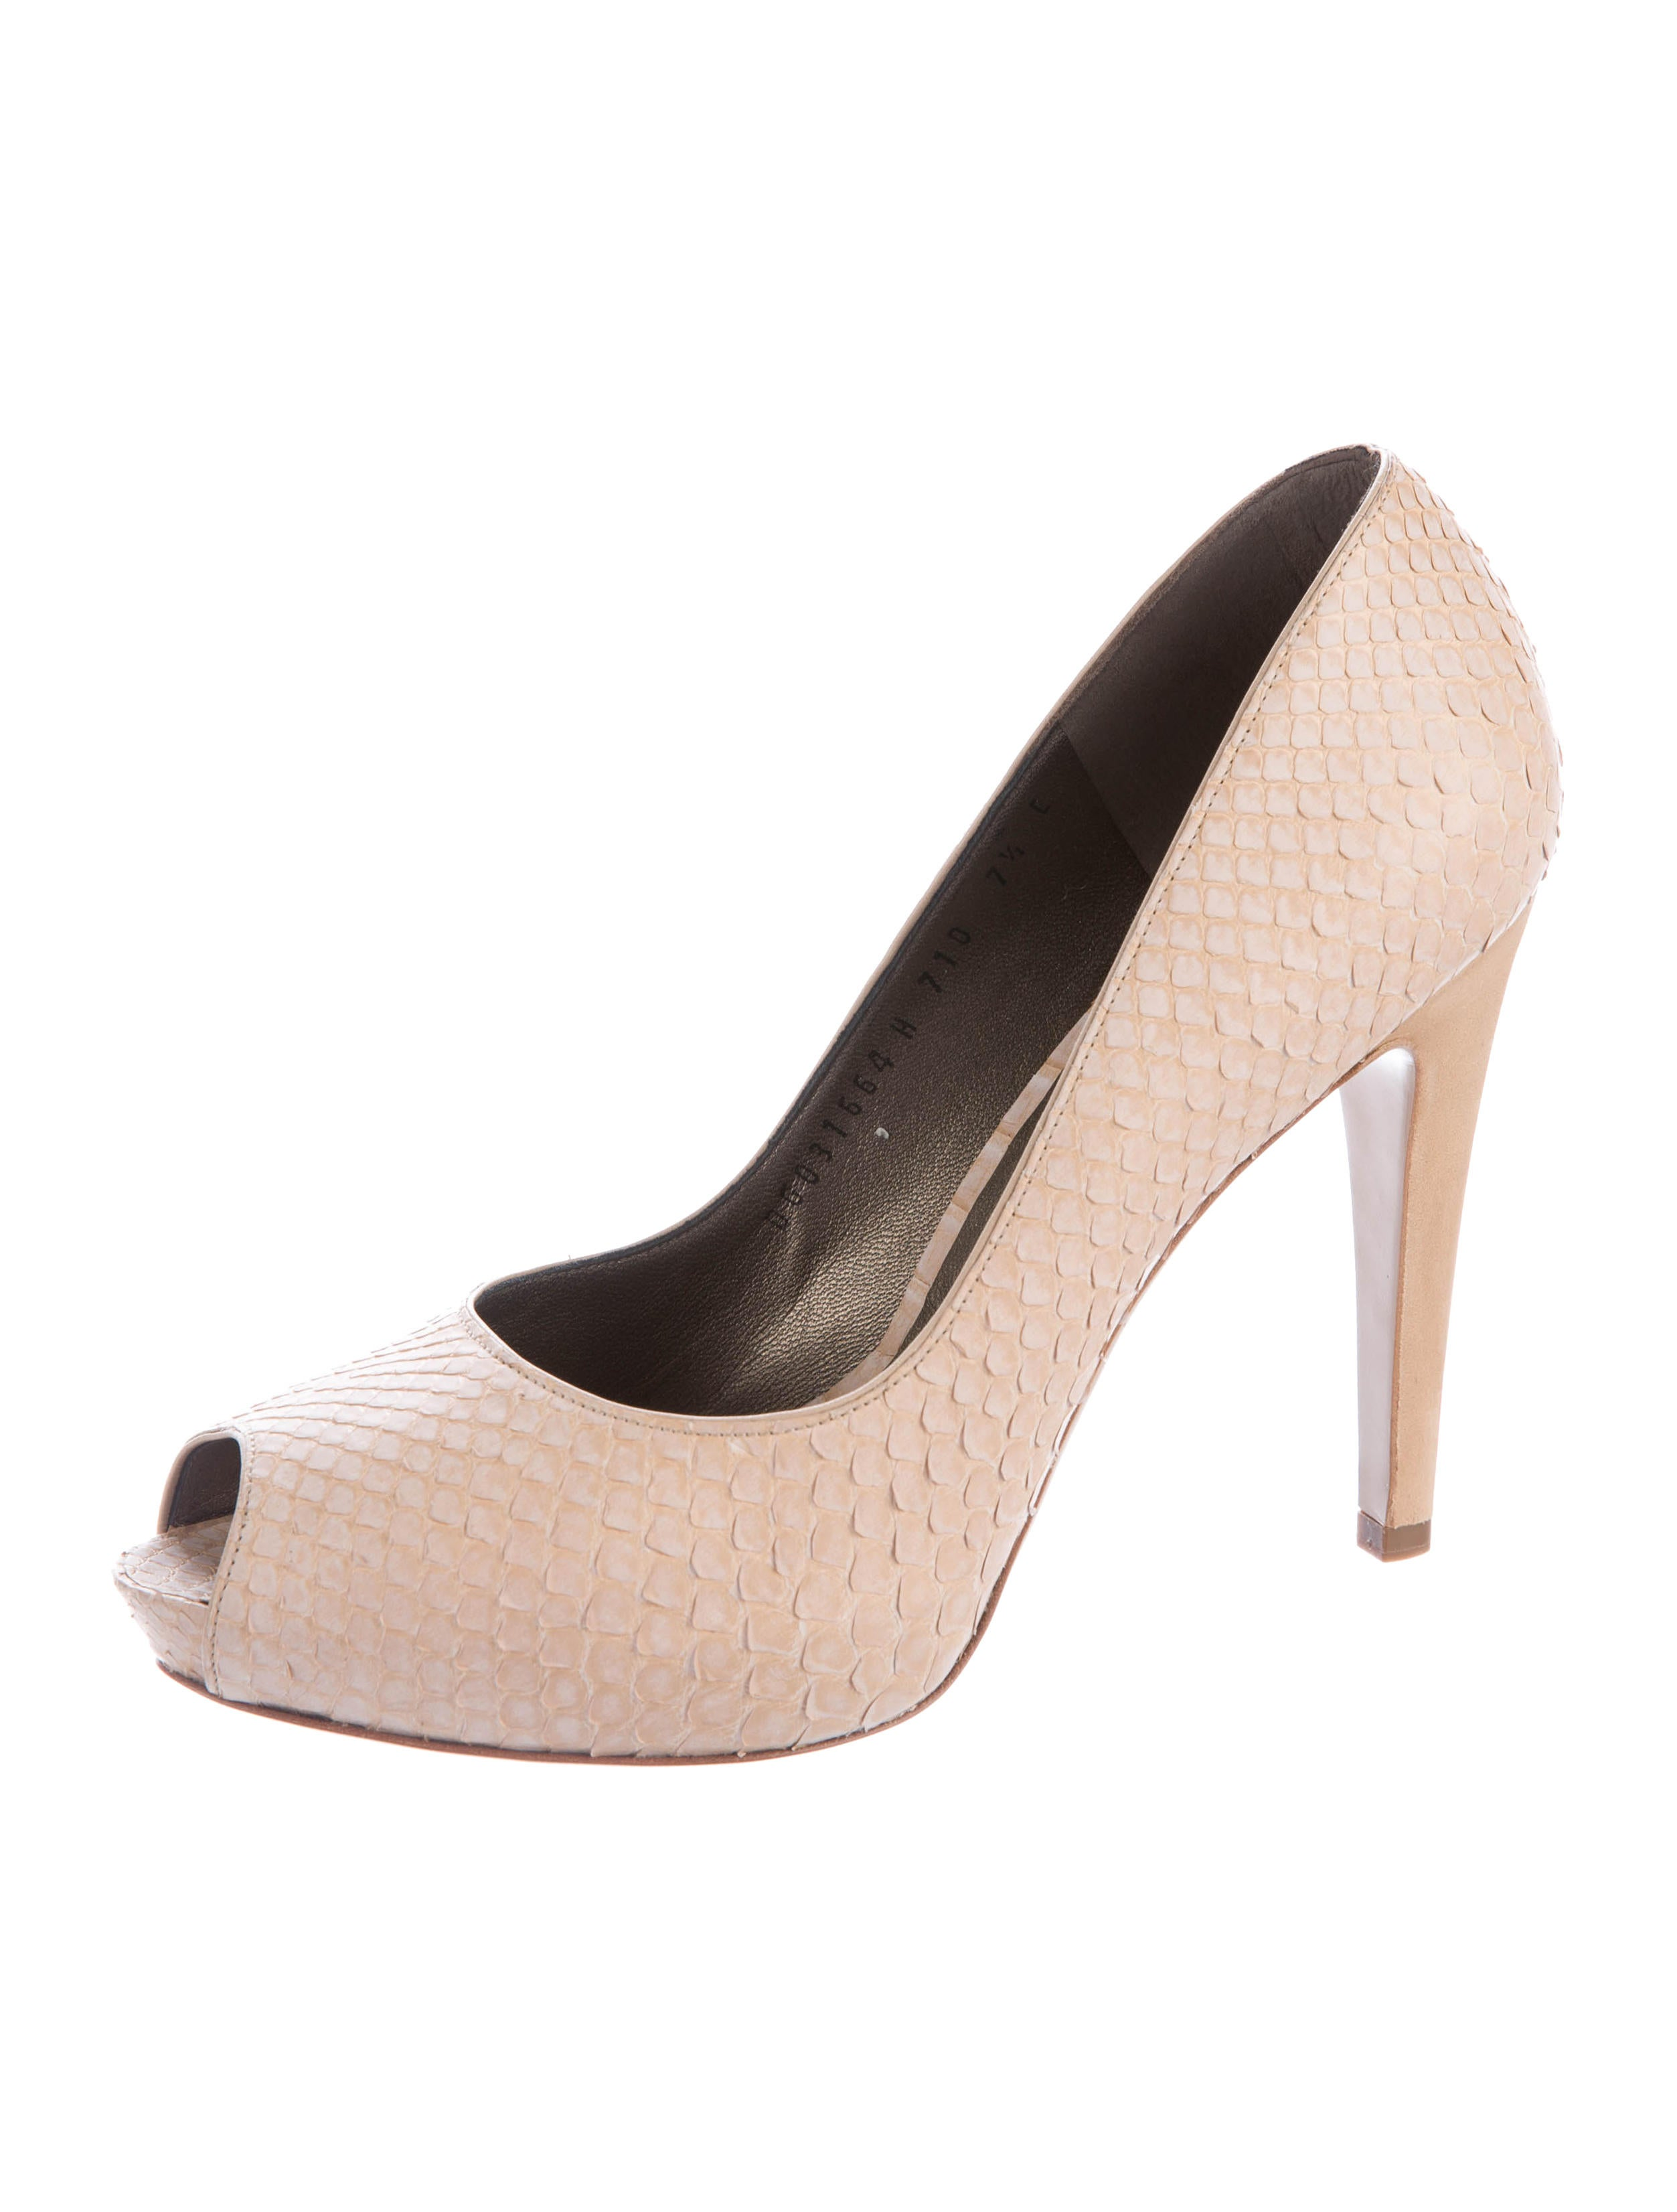 Salvatore ferragamo fish skin peep toe pumps shoes for Shoes with fish in them